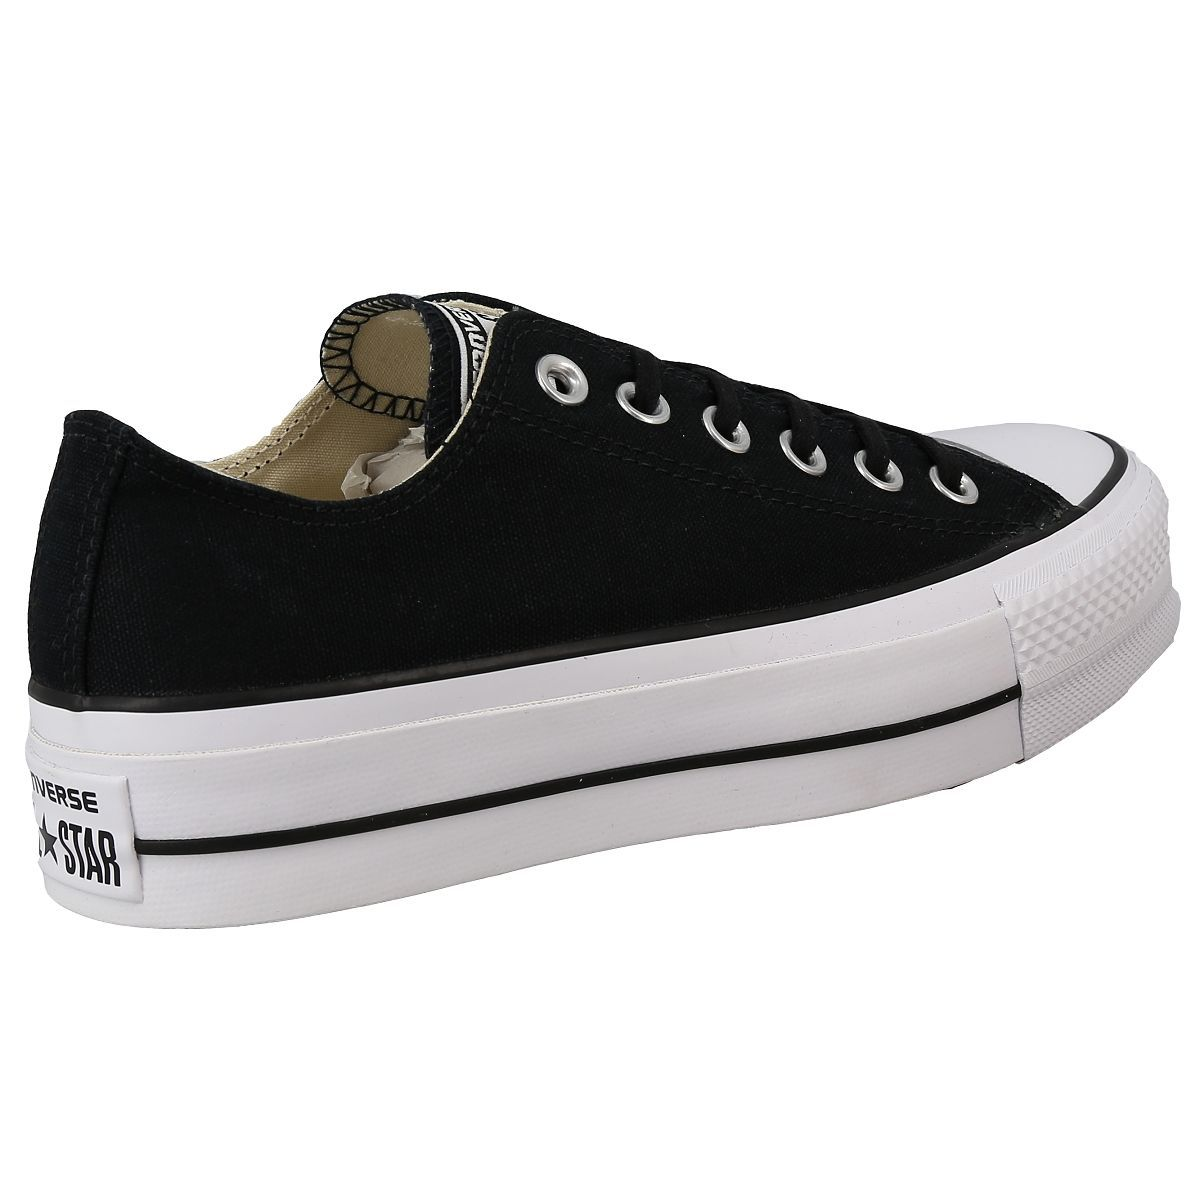 Basket Basse Chuck Taylor | Products | Basket basse, Baskets ...